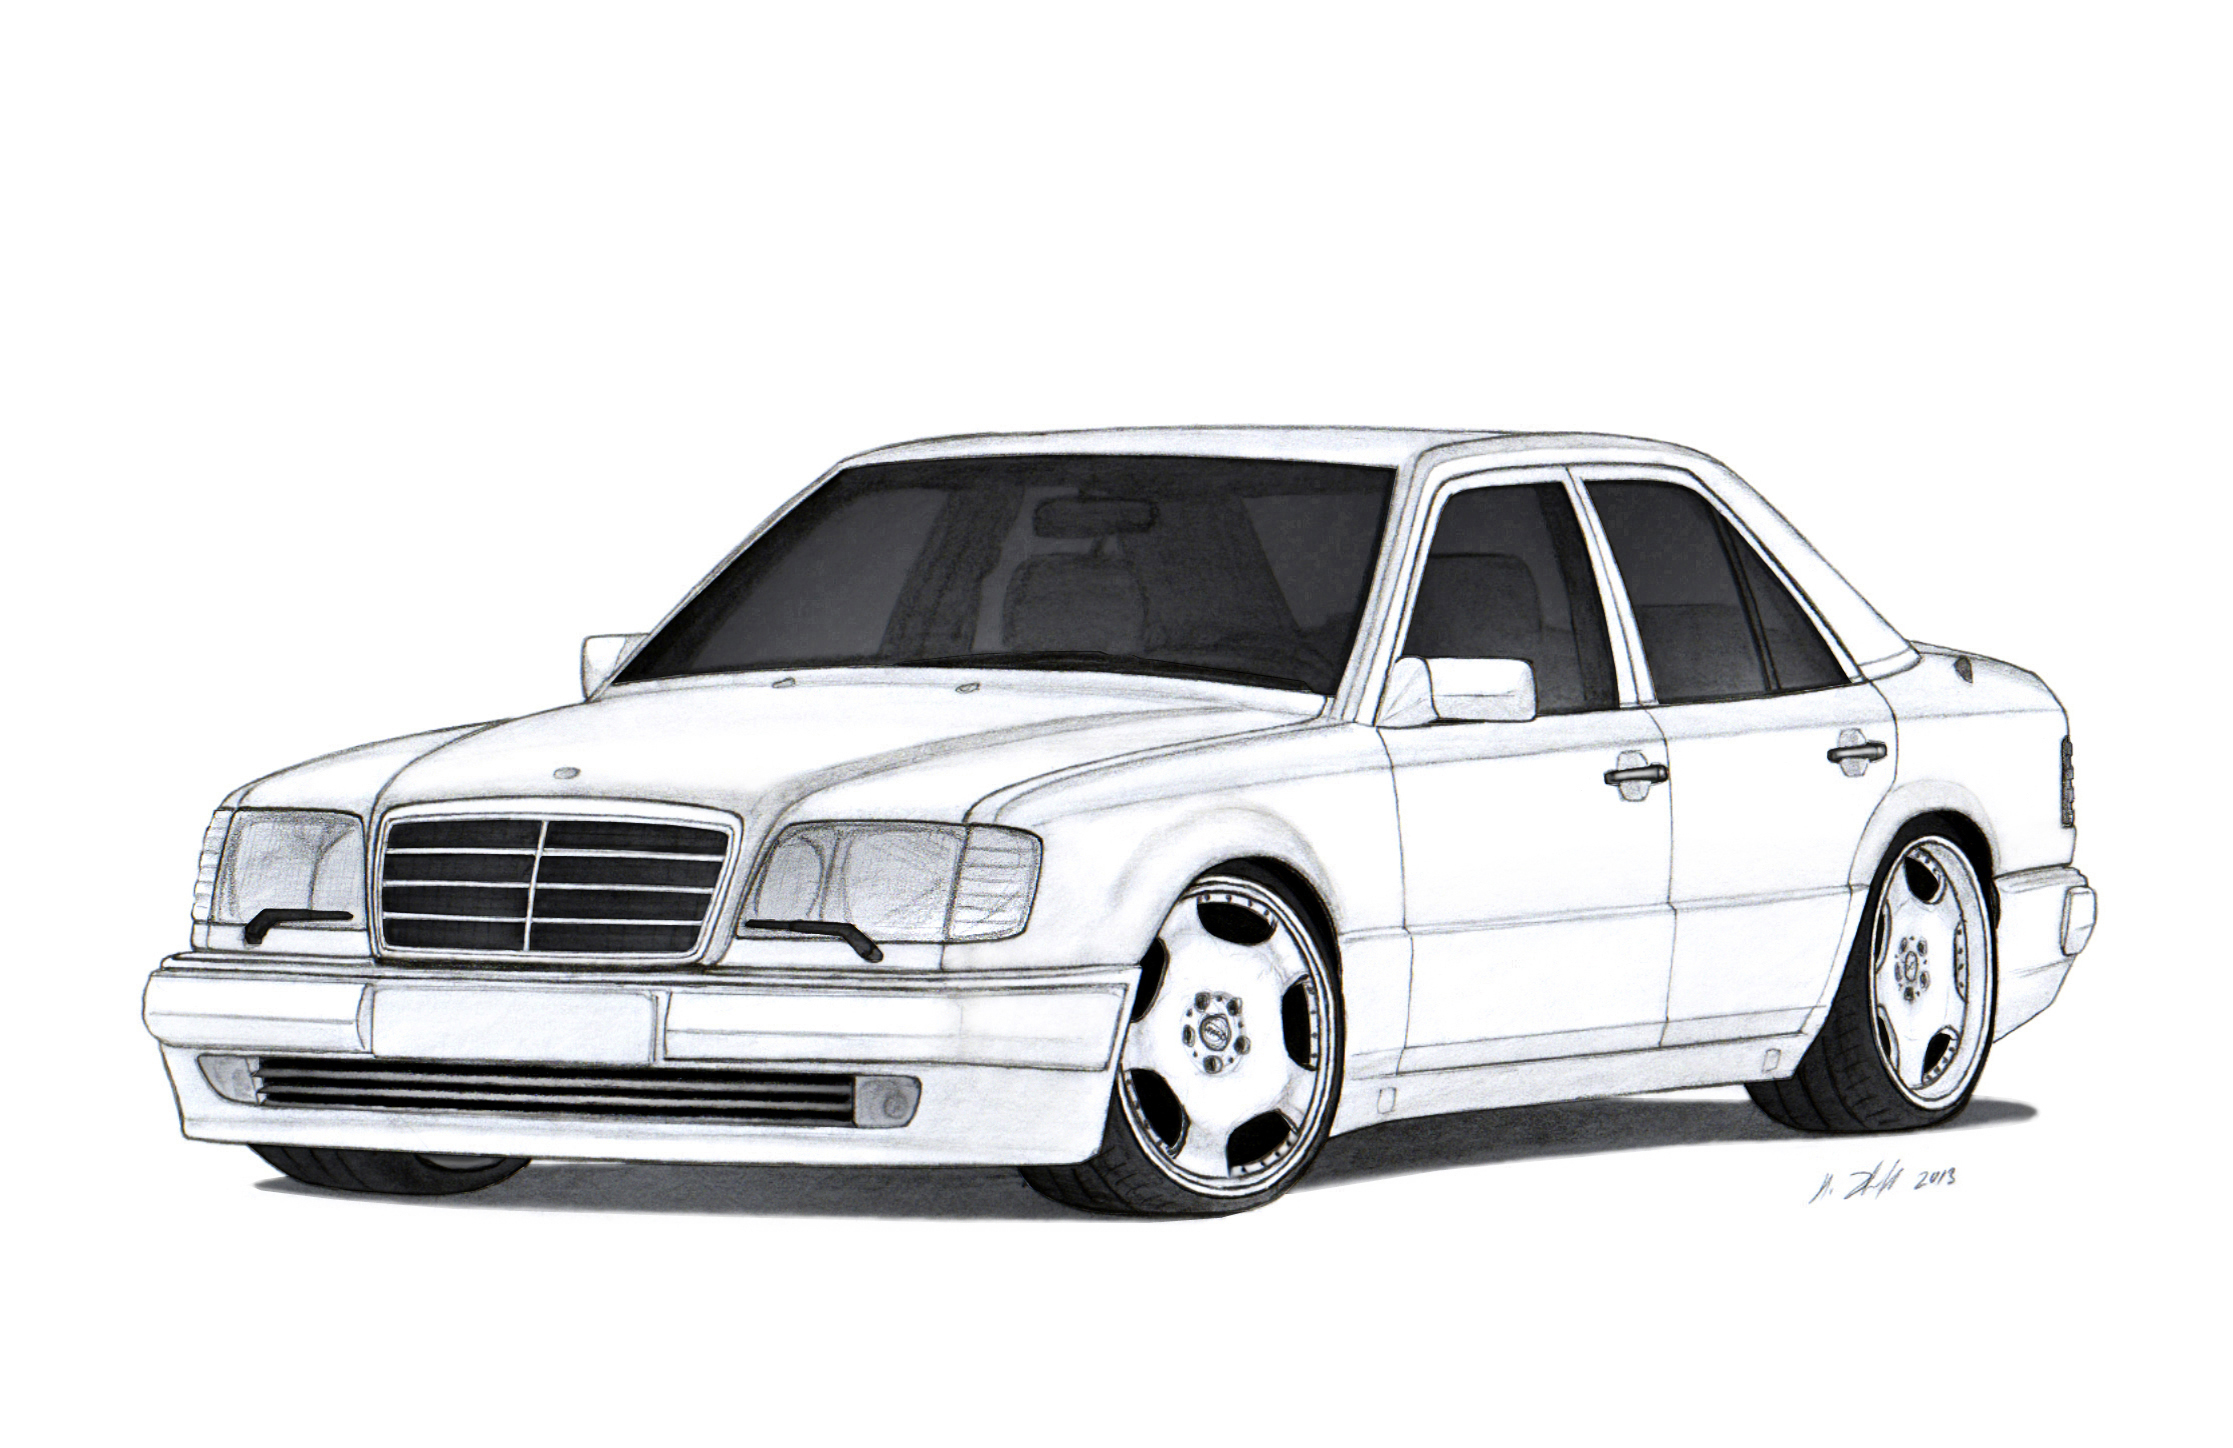 Mercedes benz 500e w124 drawing by vertualissimo on for Mercedes benz 500e